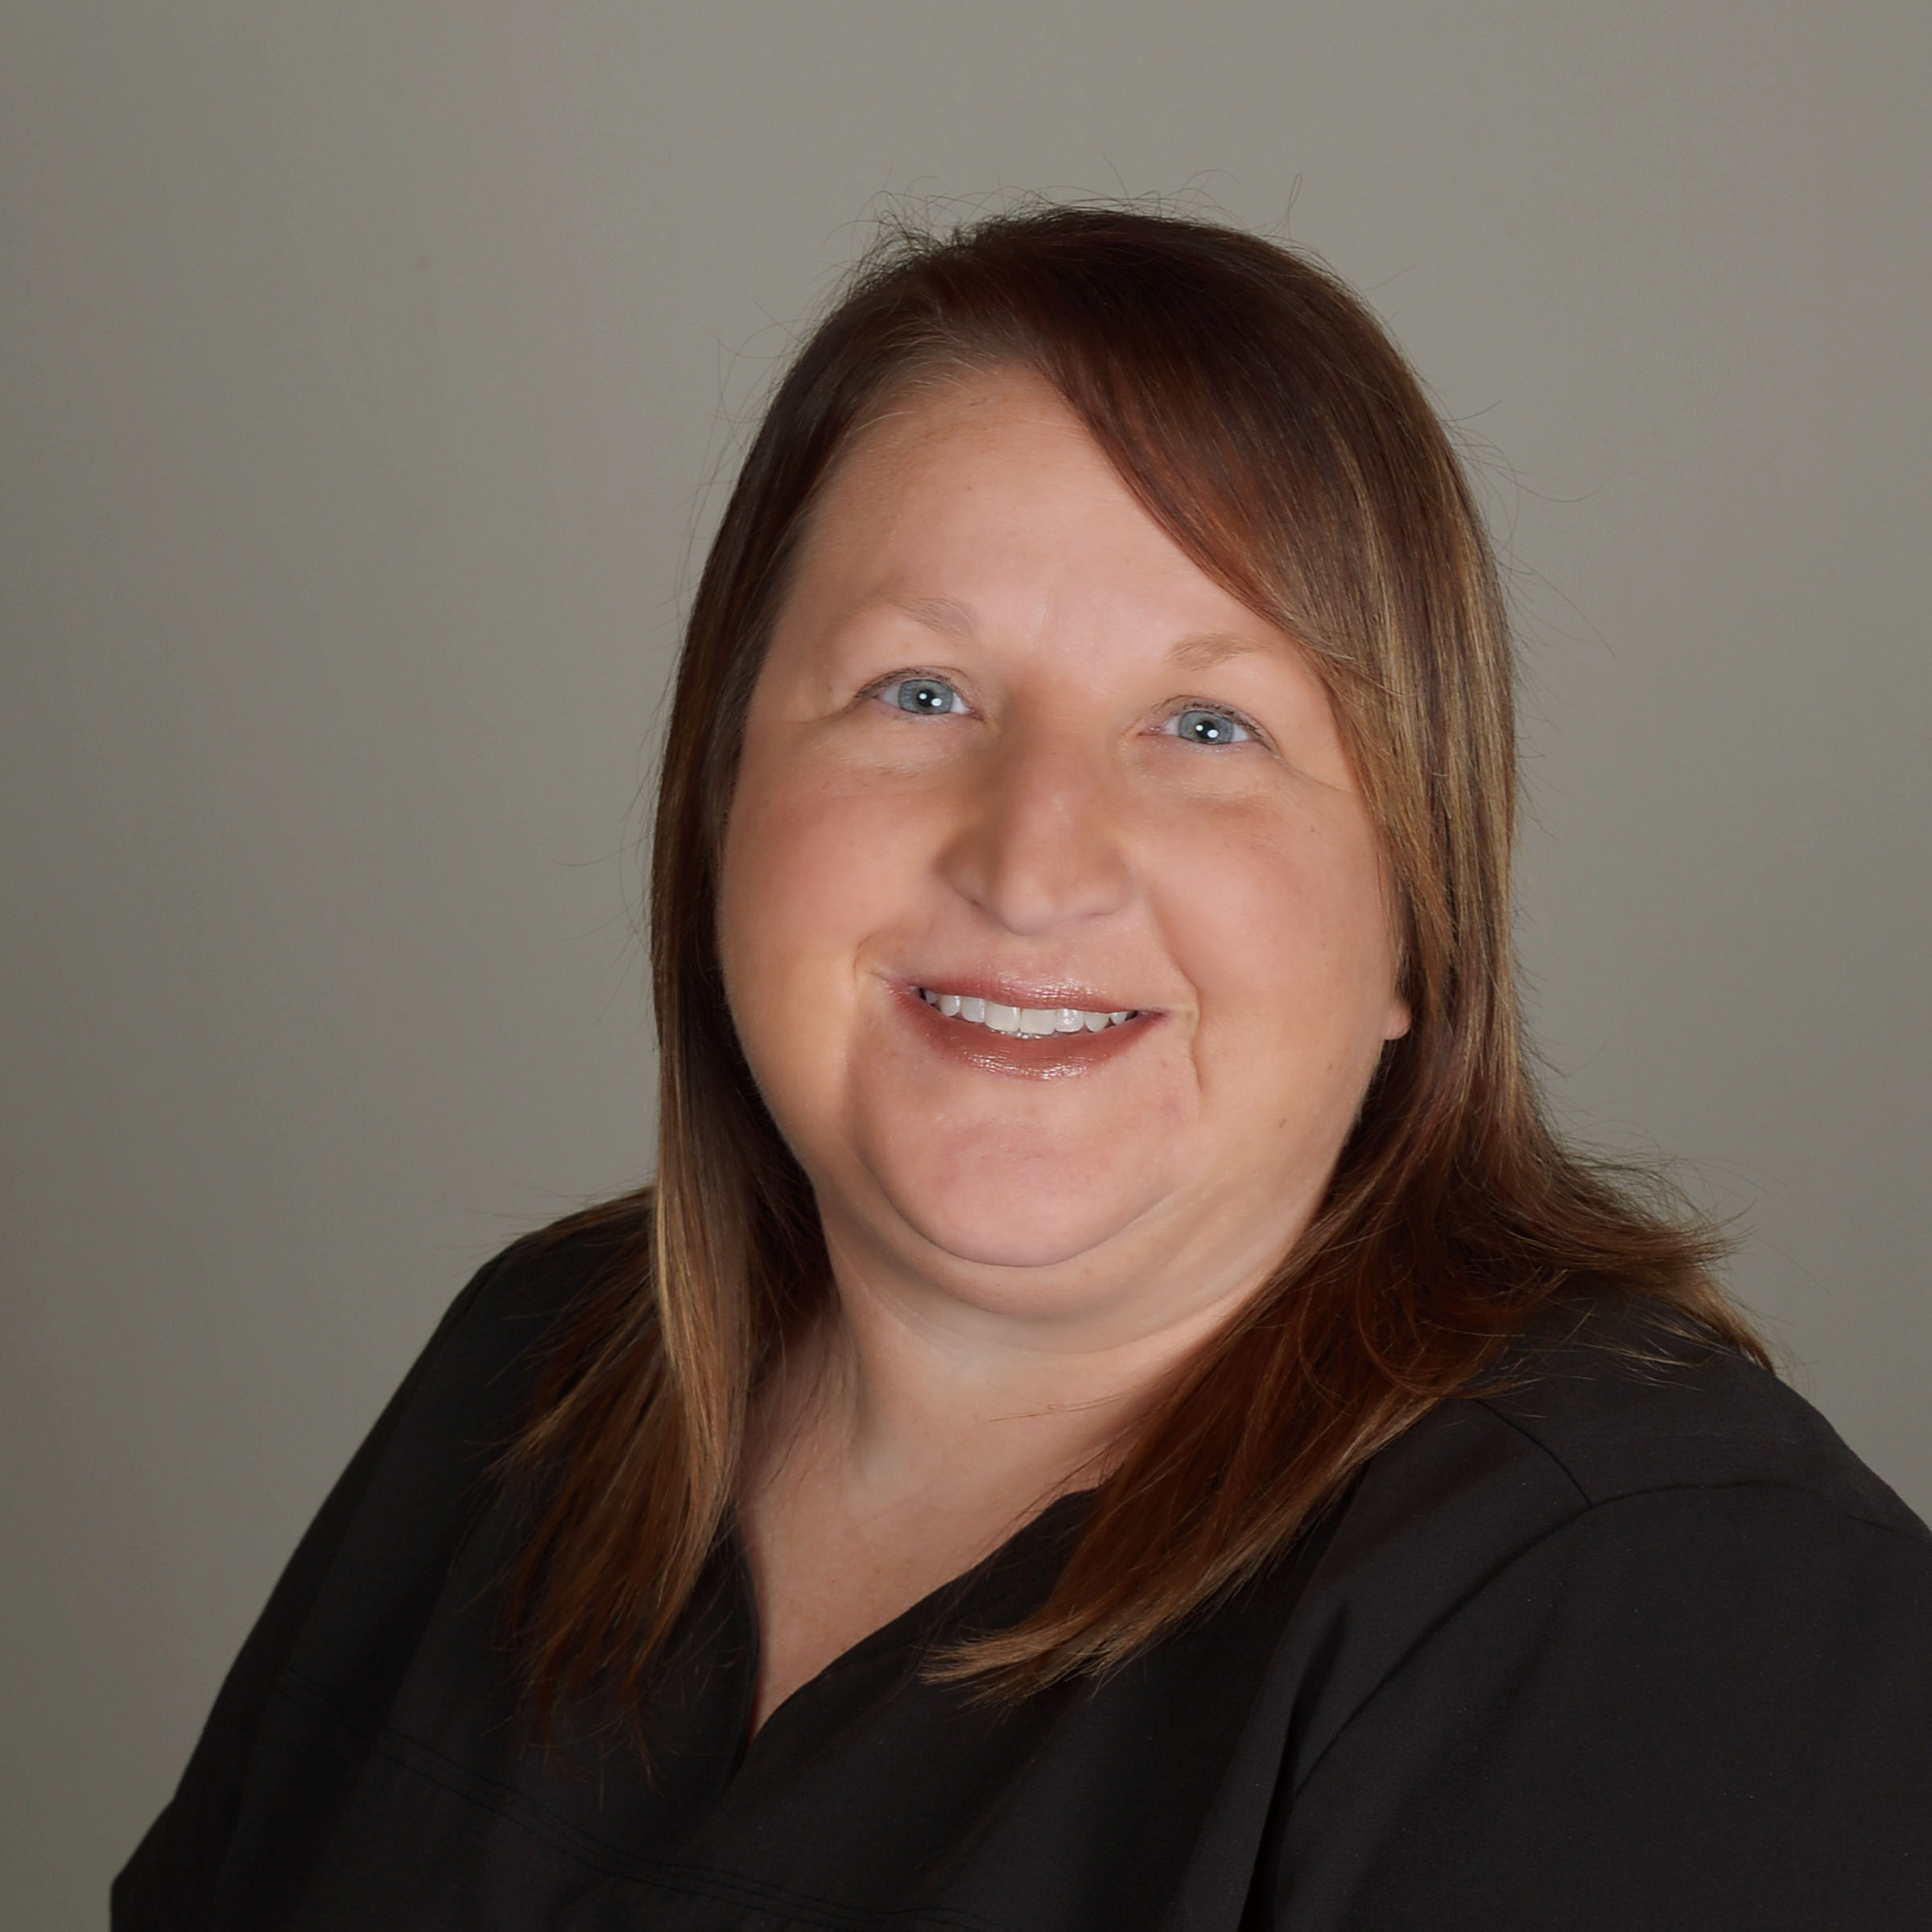 Marina - Dental Assistant for Pediatric Dentist in Springfield, MO